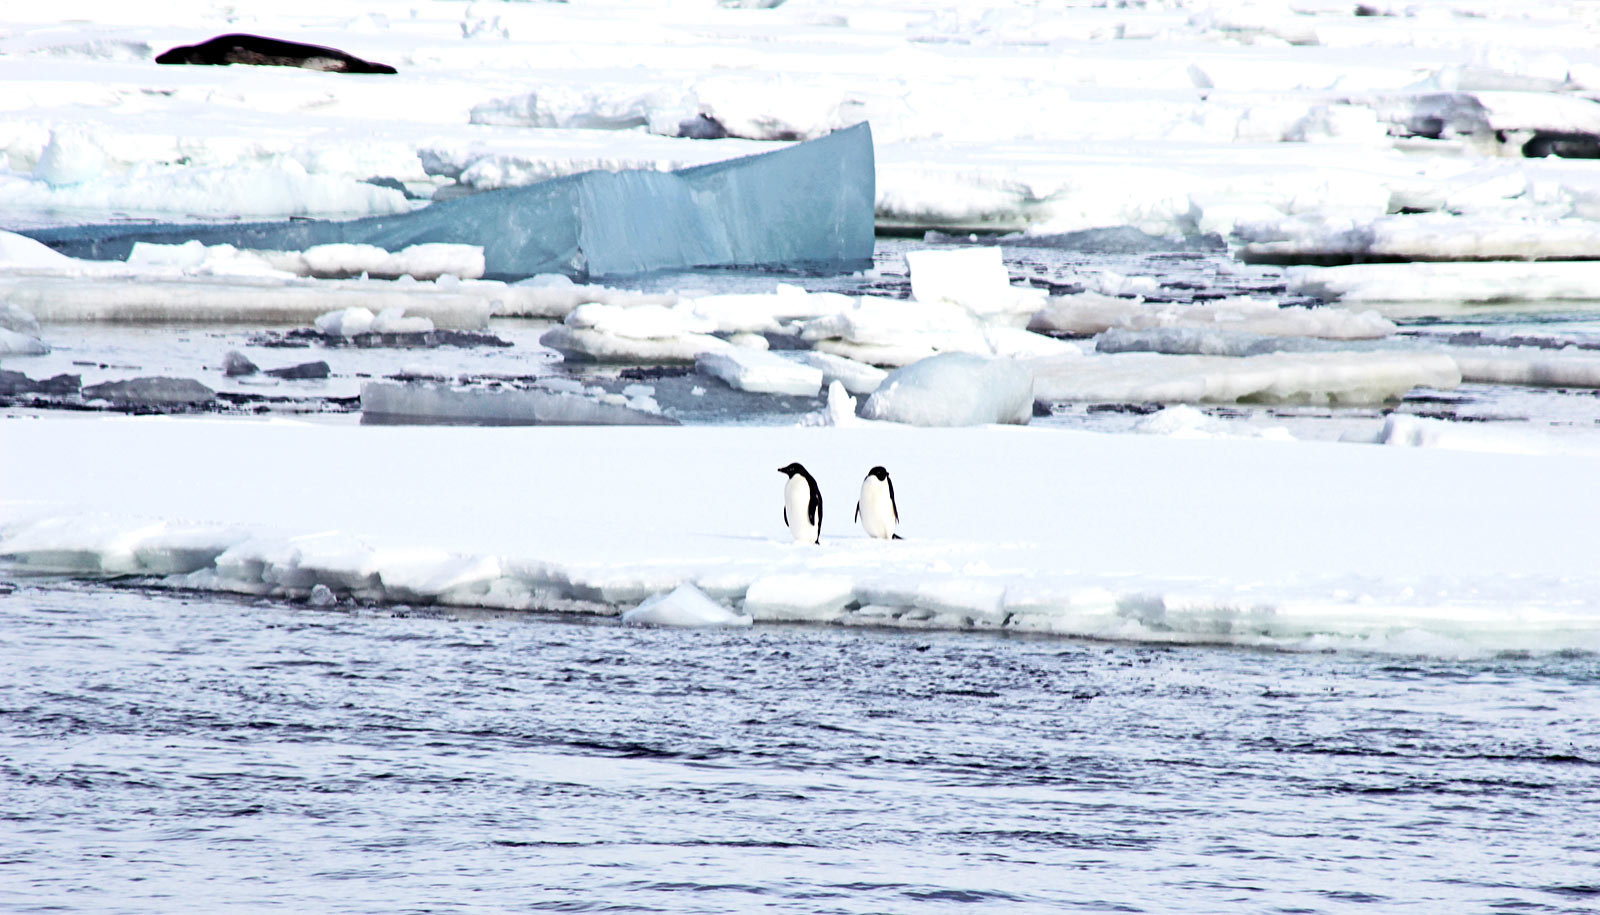 two penguins on ice